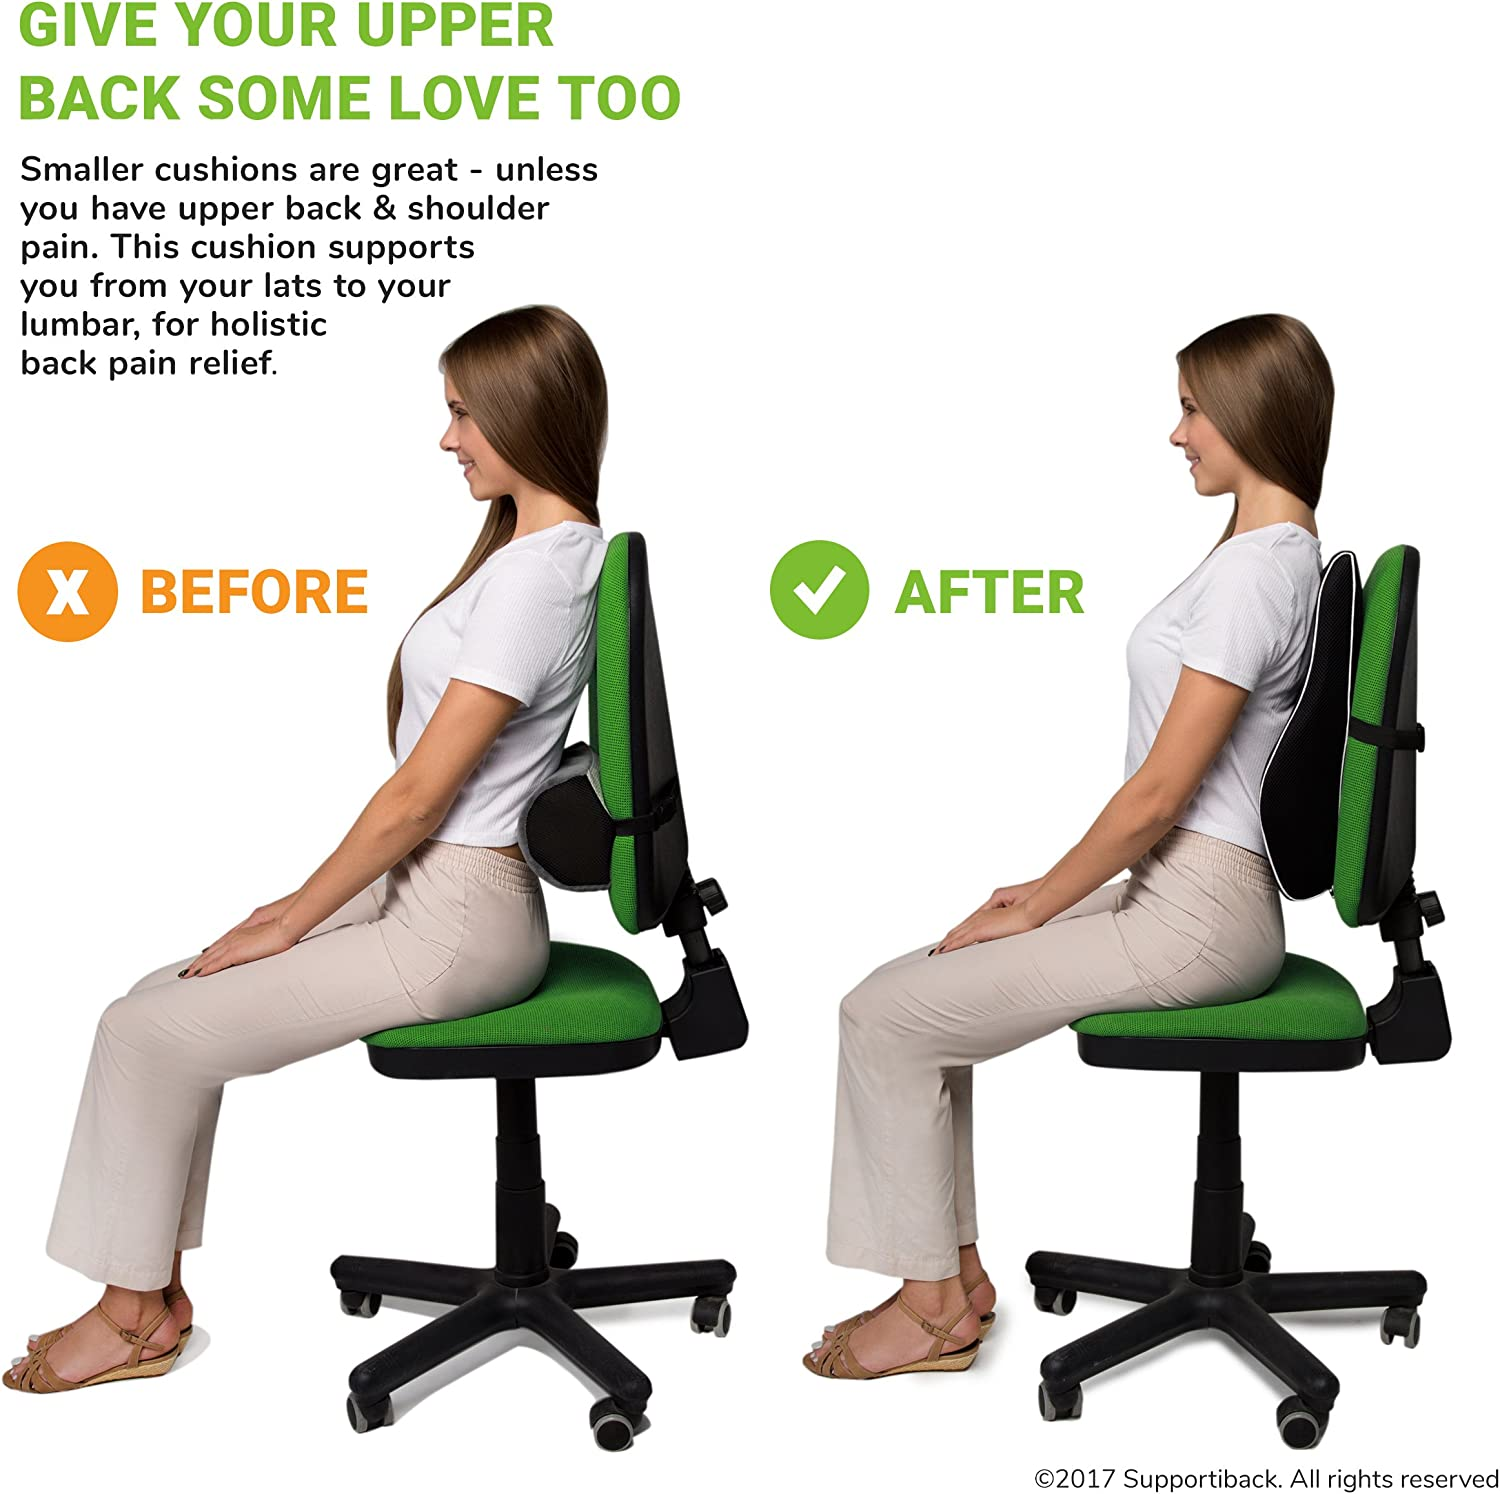 Supportiback Posture Therapy Lumbar Cushion Ergonomic Office Chair Car And Travel Back Support Pillow With Memory Foam And Dual Adjustable Straps Relieves Prevents Upper Lower Back Pain Amazon Ca